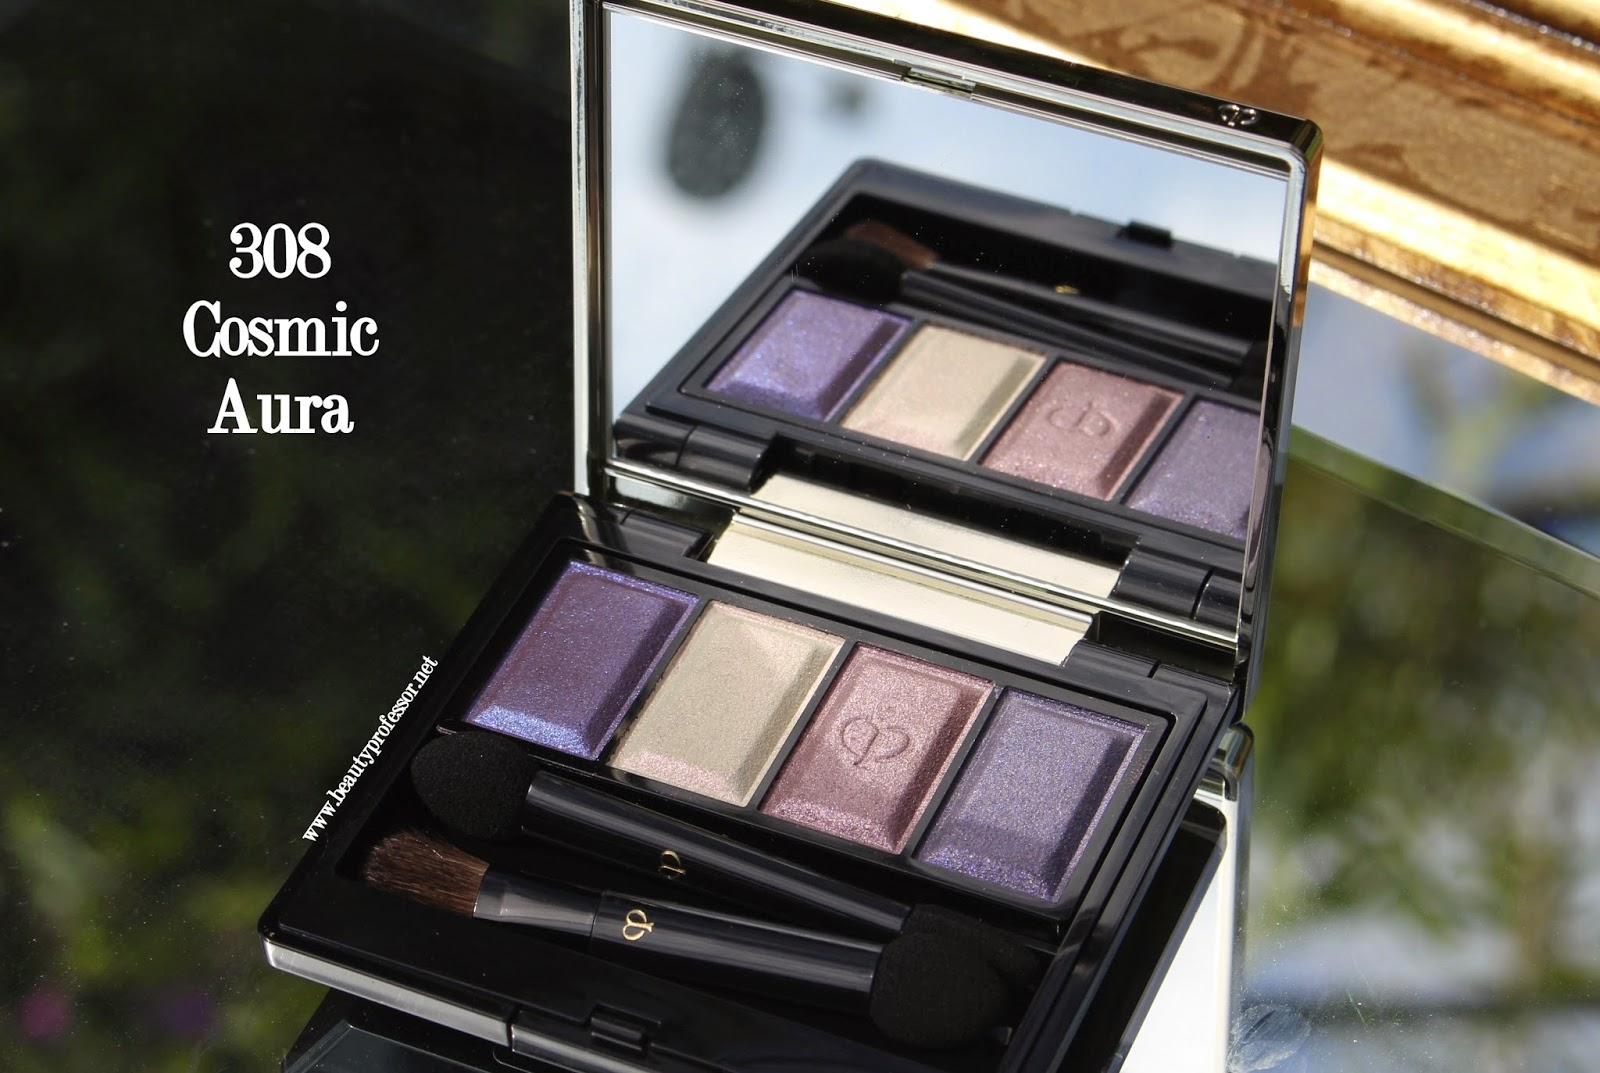 Cle de peau eye color quad 308 cosmic aura swatches